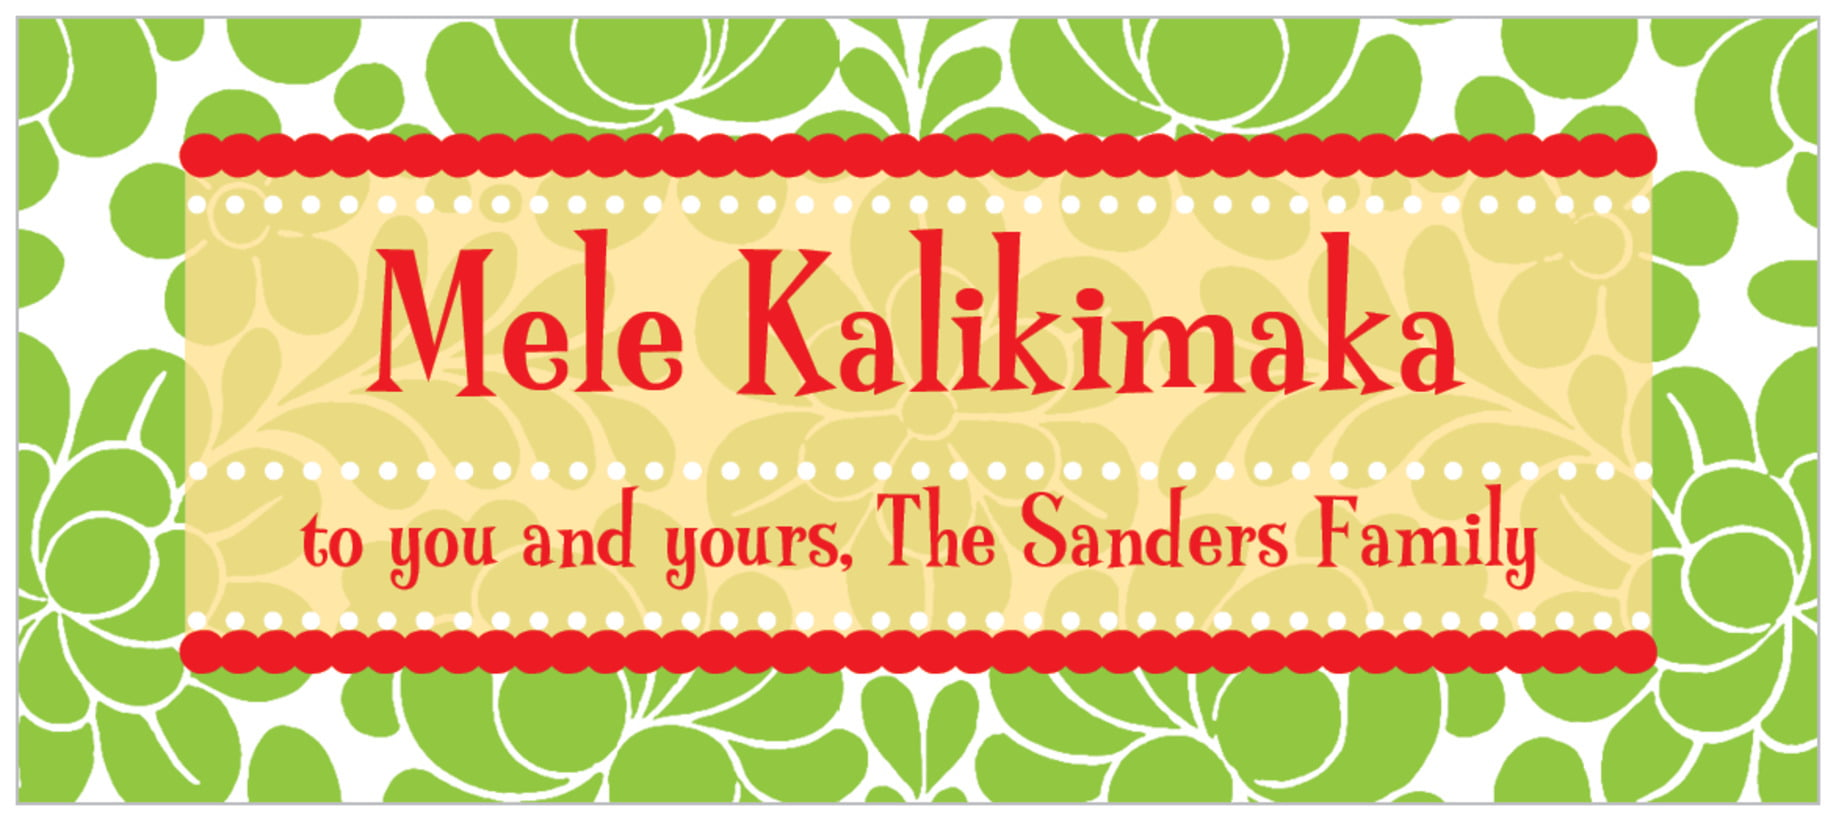 small rectangle food/craft labels - green - mele kalikimaka (set of 24)